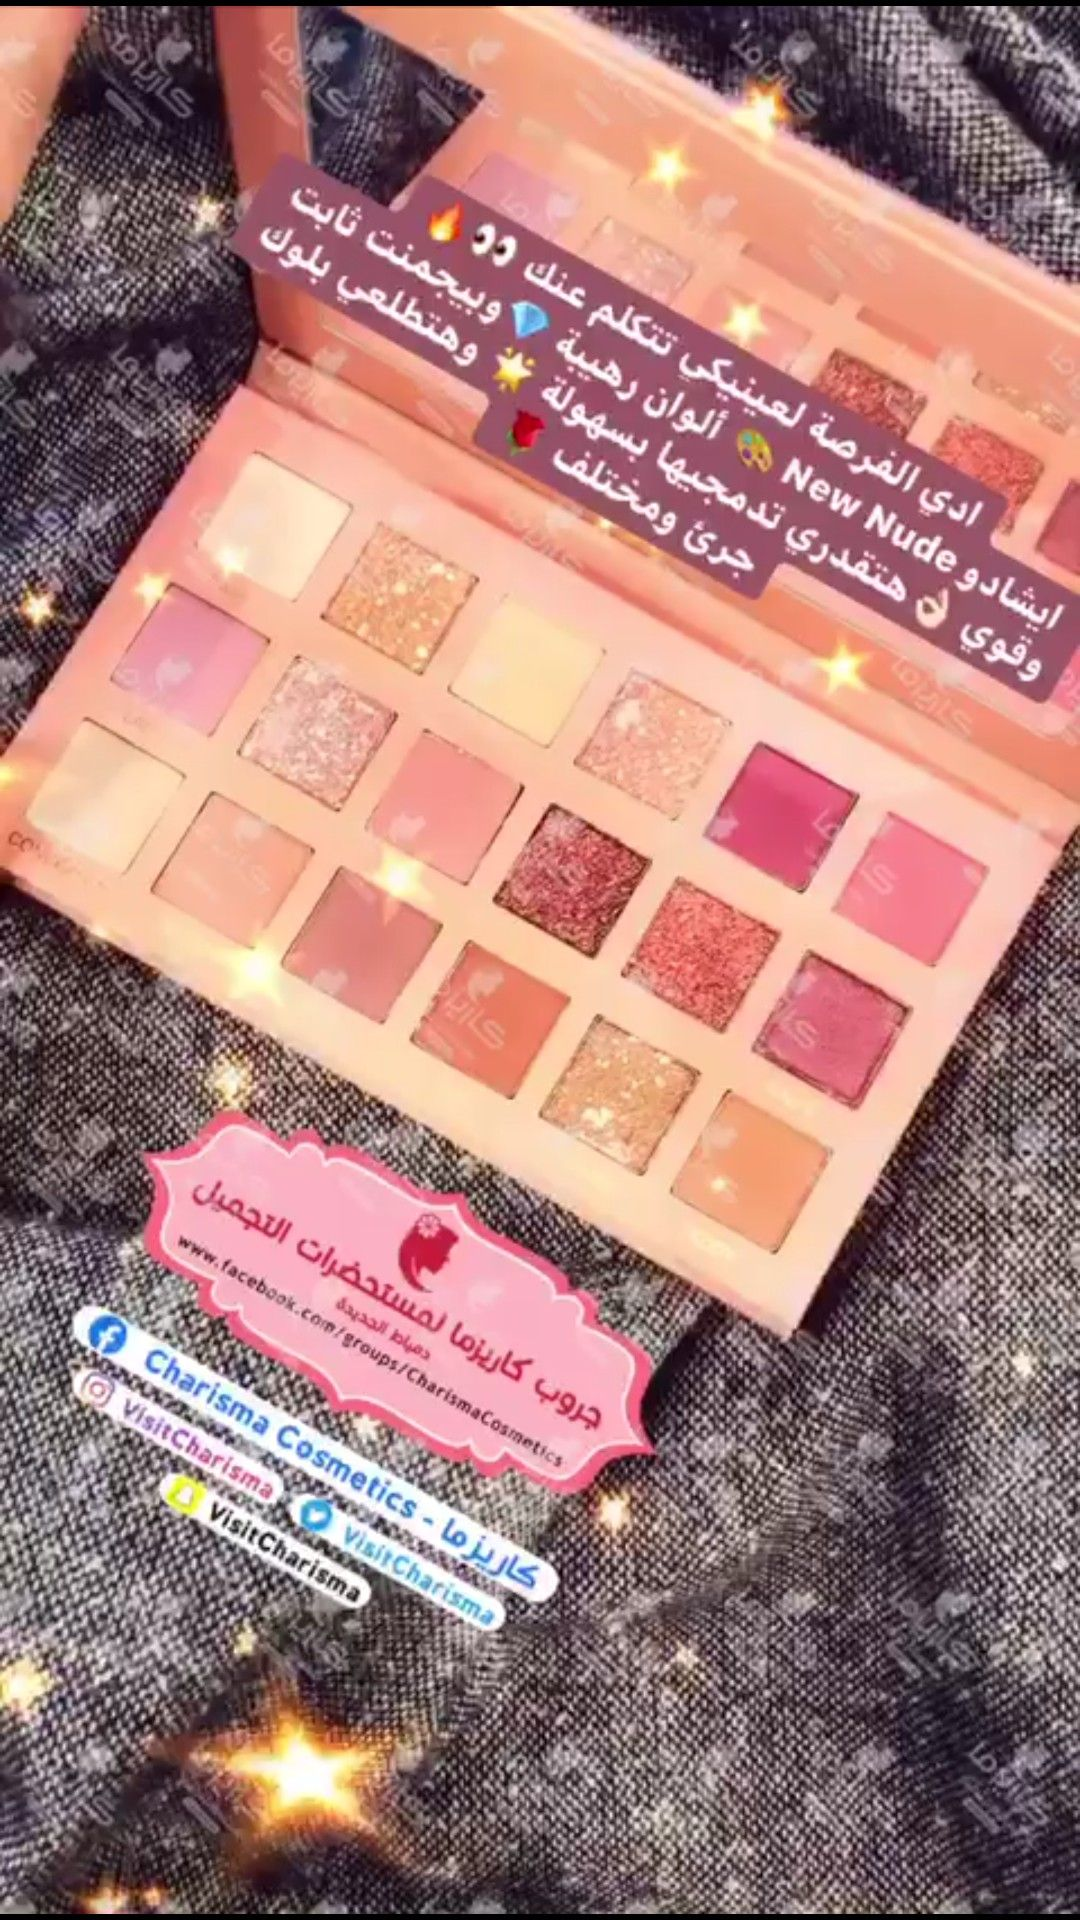 Pin On Charisma Cosmetics كاريزما